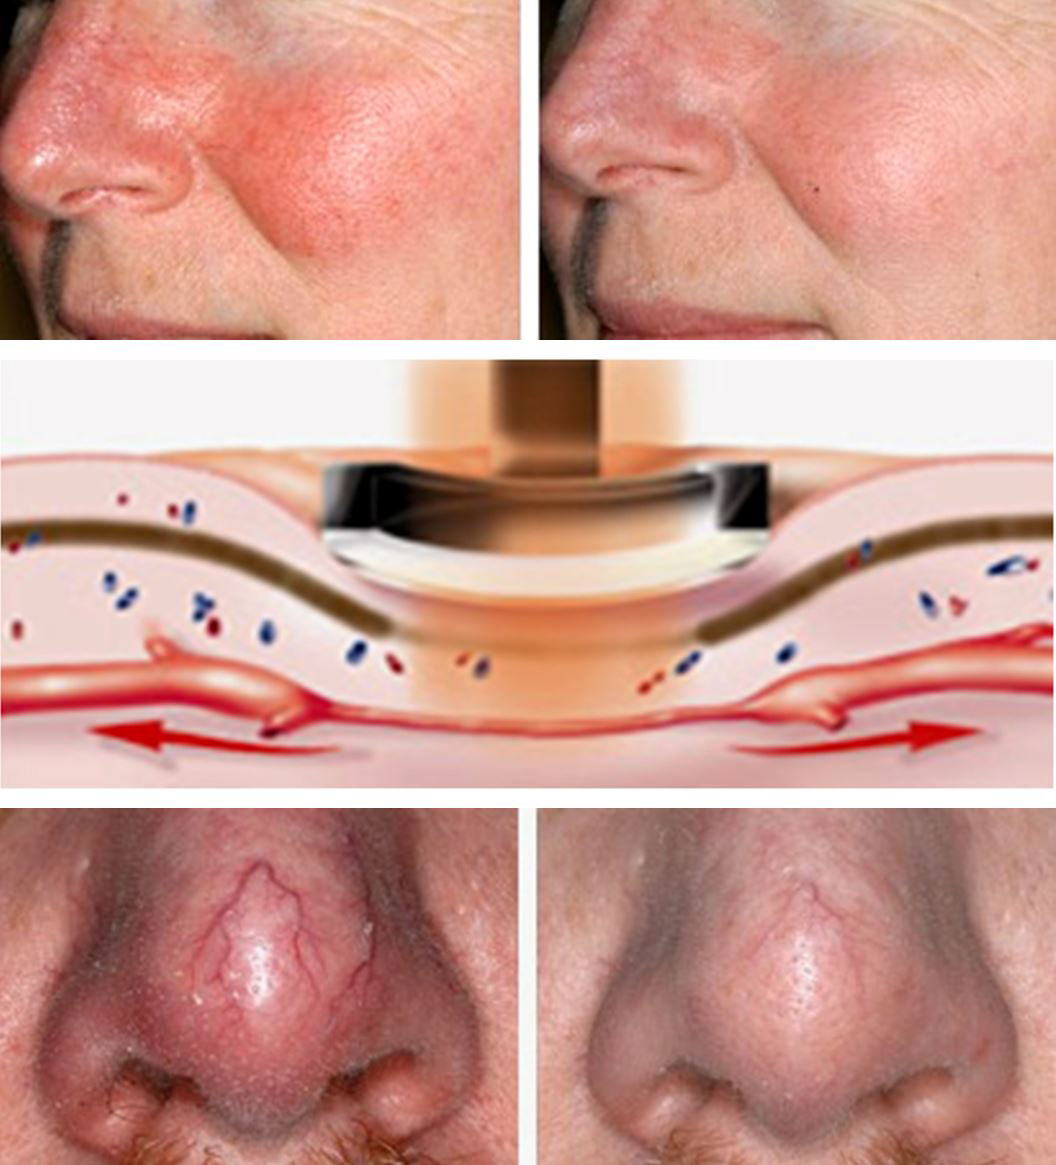 coastal-valley-dermatology-carmel-spider-veins-nose-face-photo